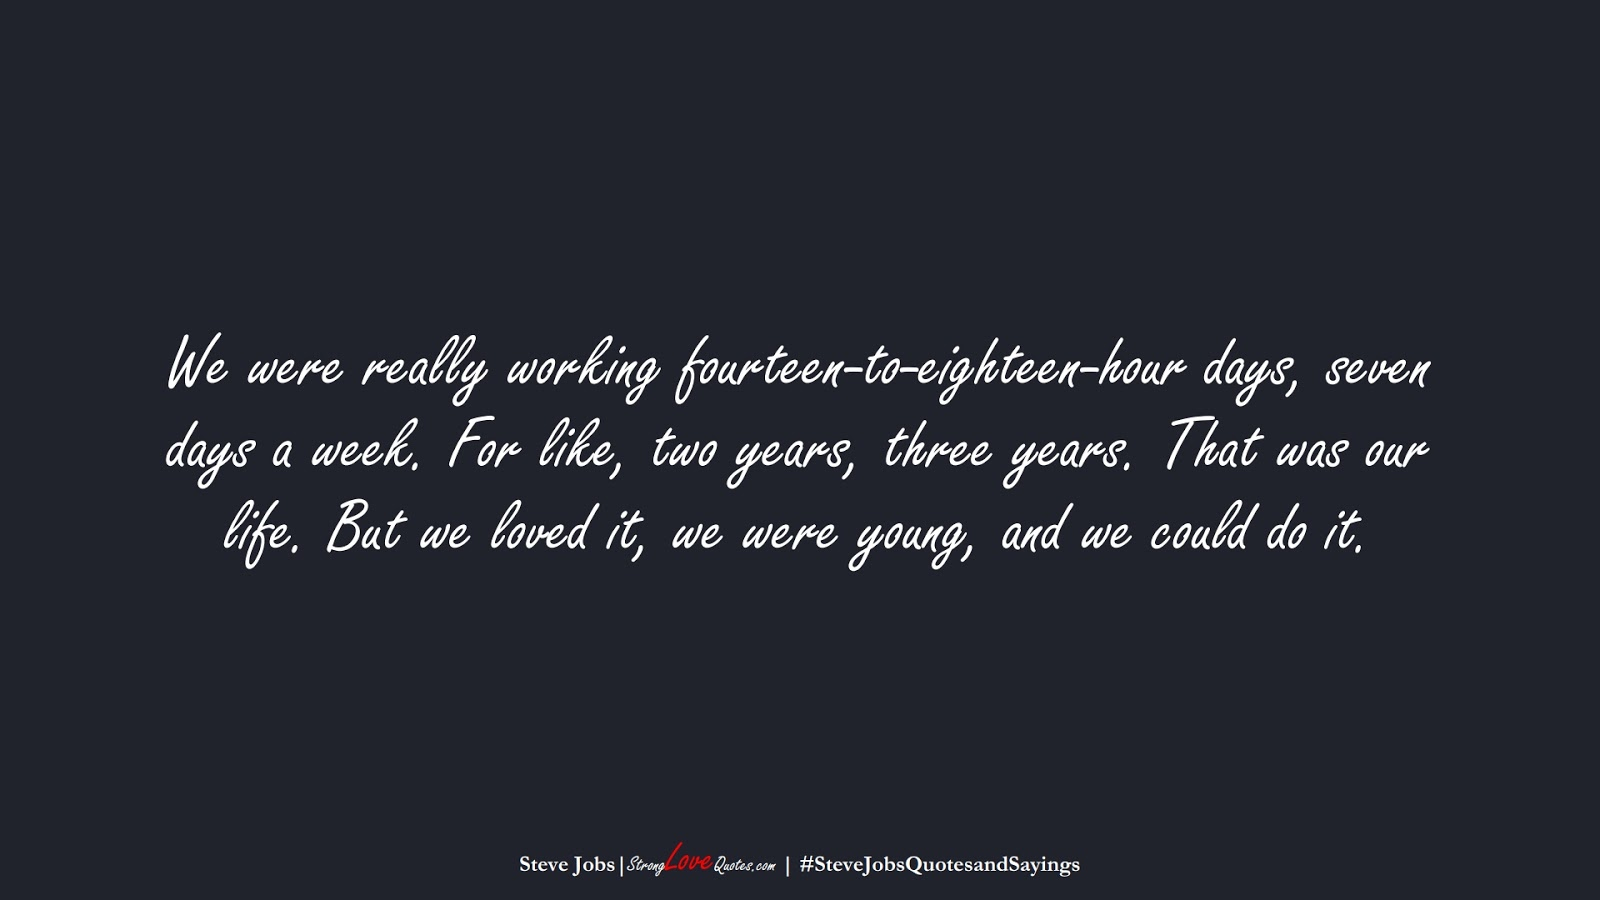 We were really working fourteen-to-eighteen-hour days, seven days a week. For like, two years, three years. That was our life. But we loved it, we were young, and we could do it. (Steve Jobs);  #SteveJobsQuotesandSayings